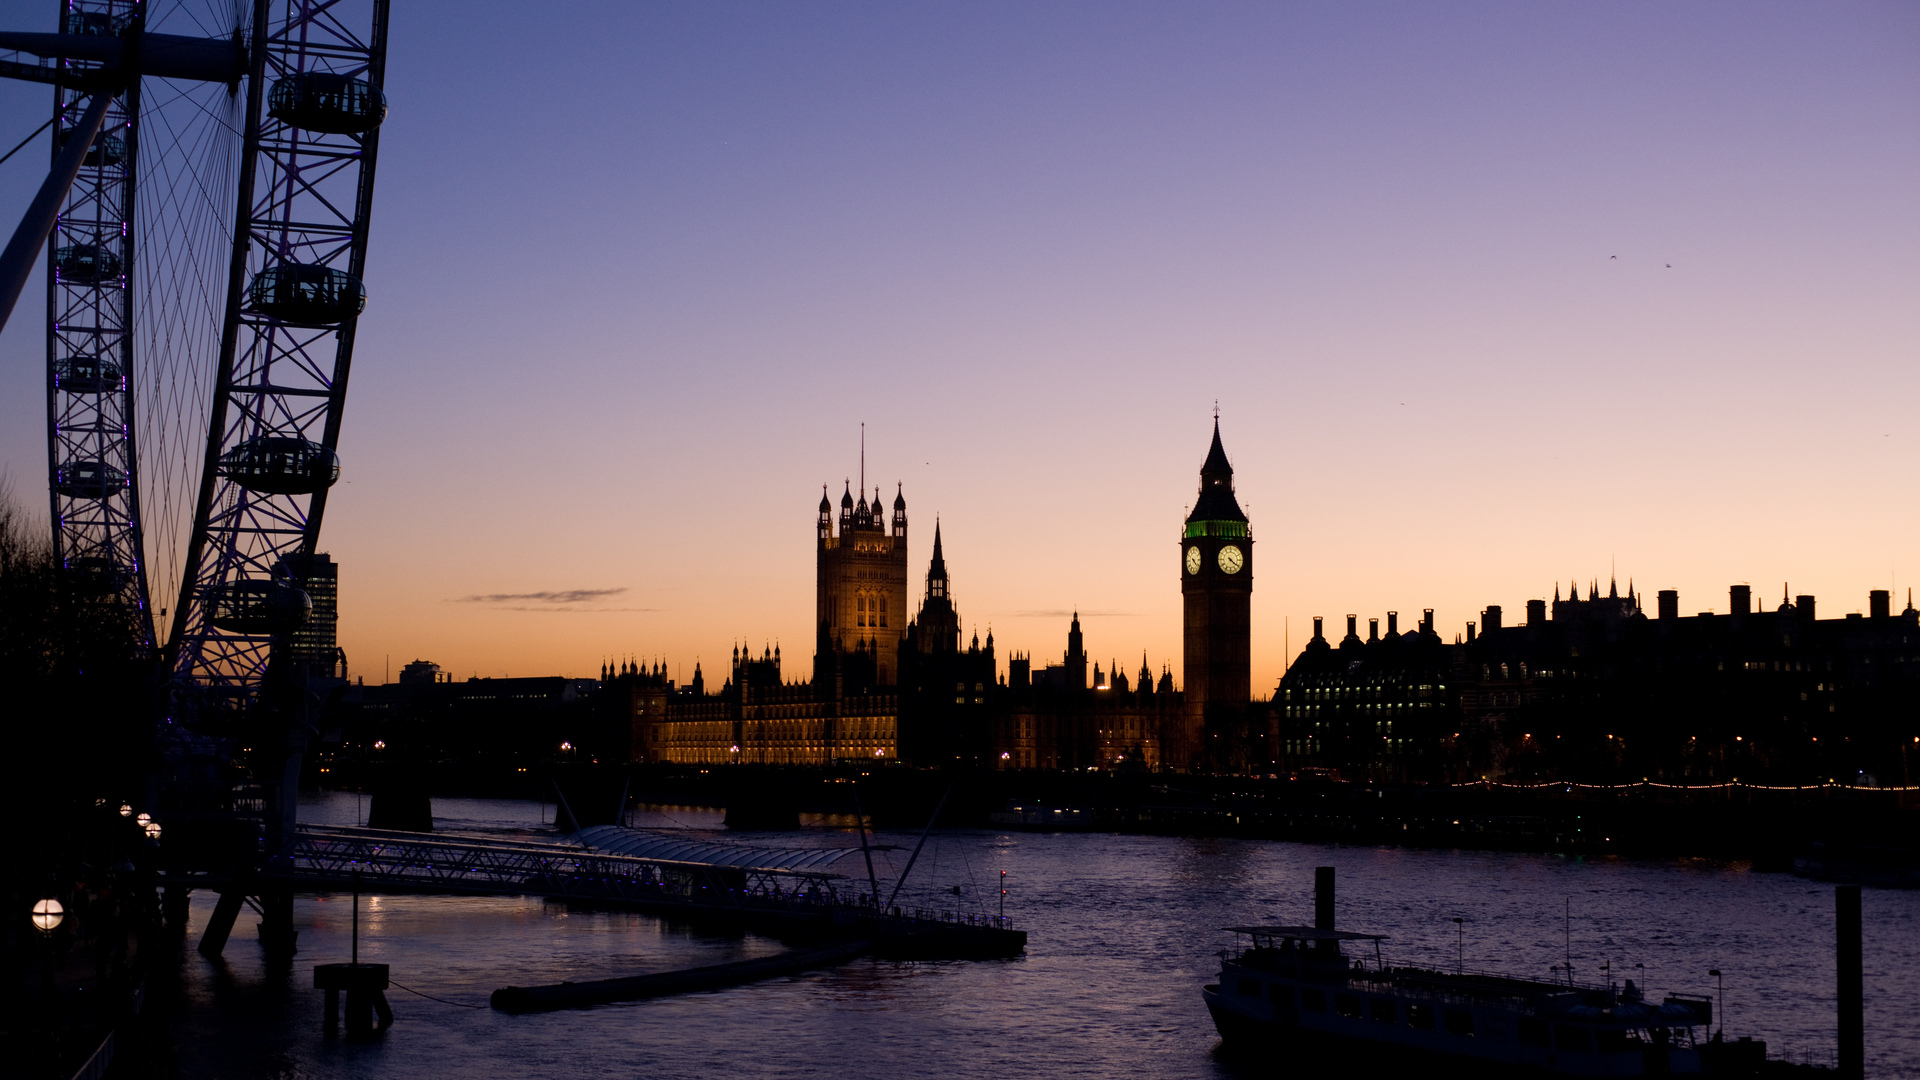 London Desktop Tumblr Wallpapers Free Is Cool Wallpapers